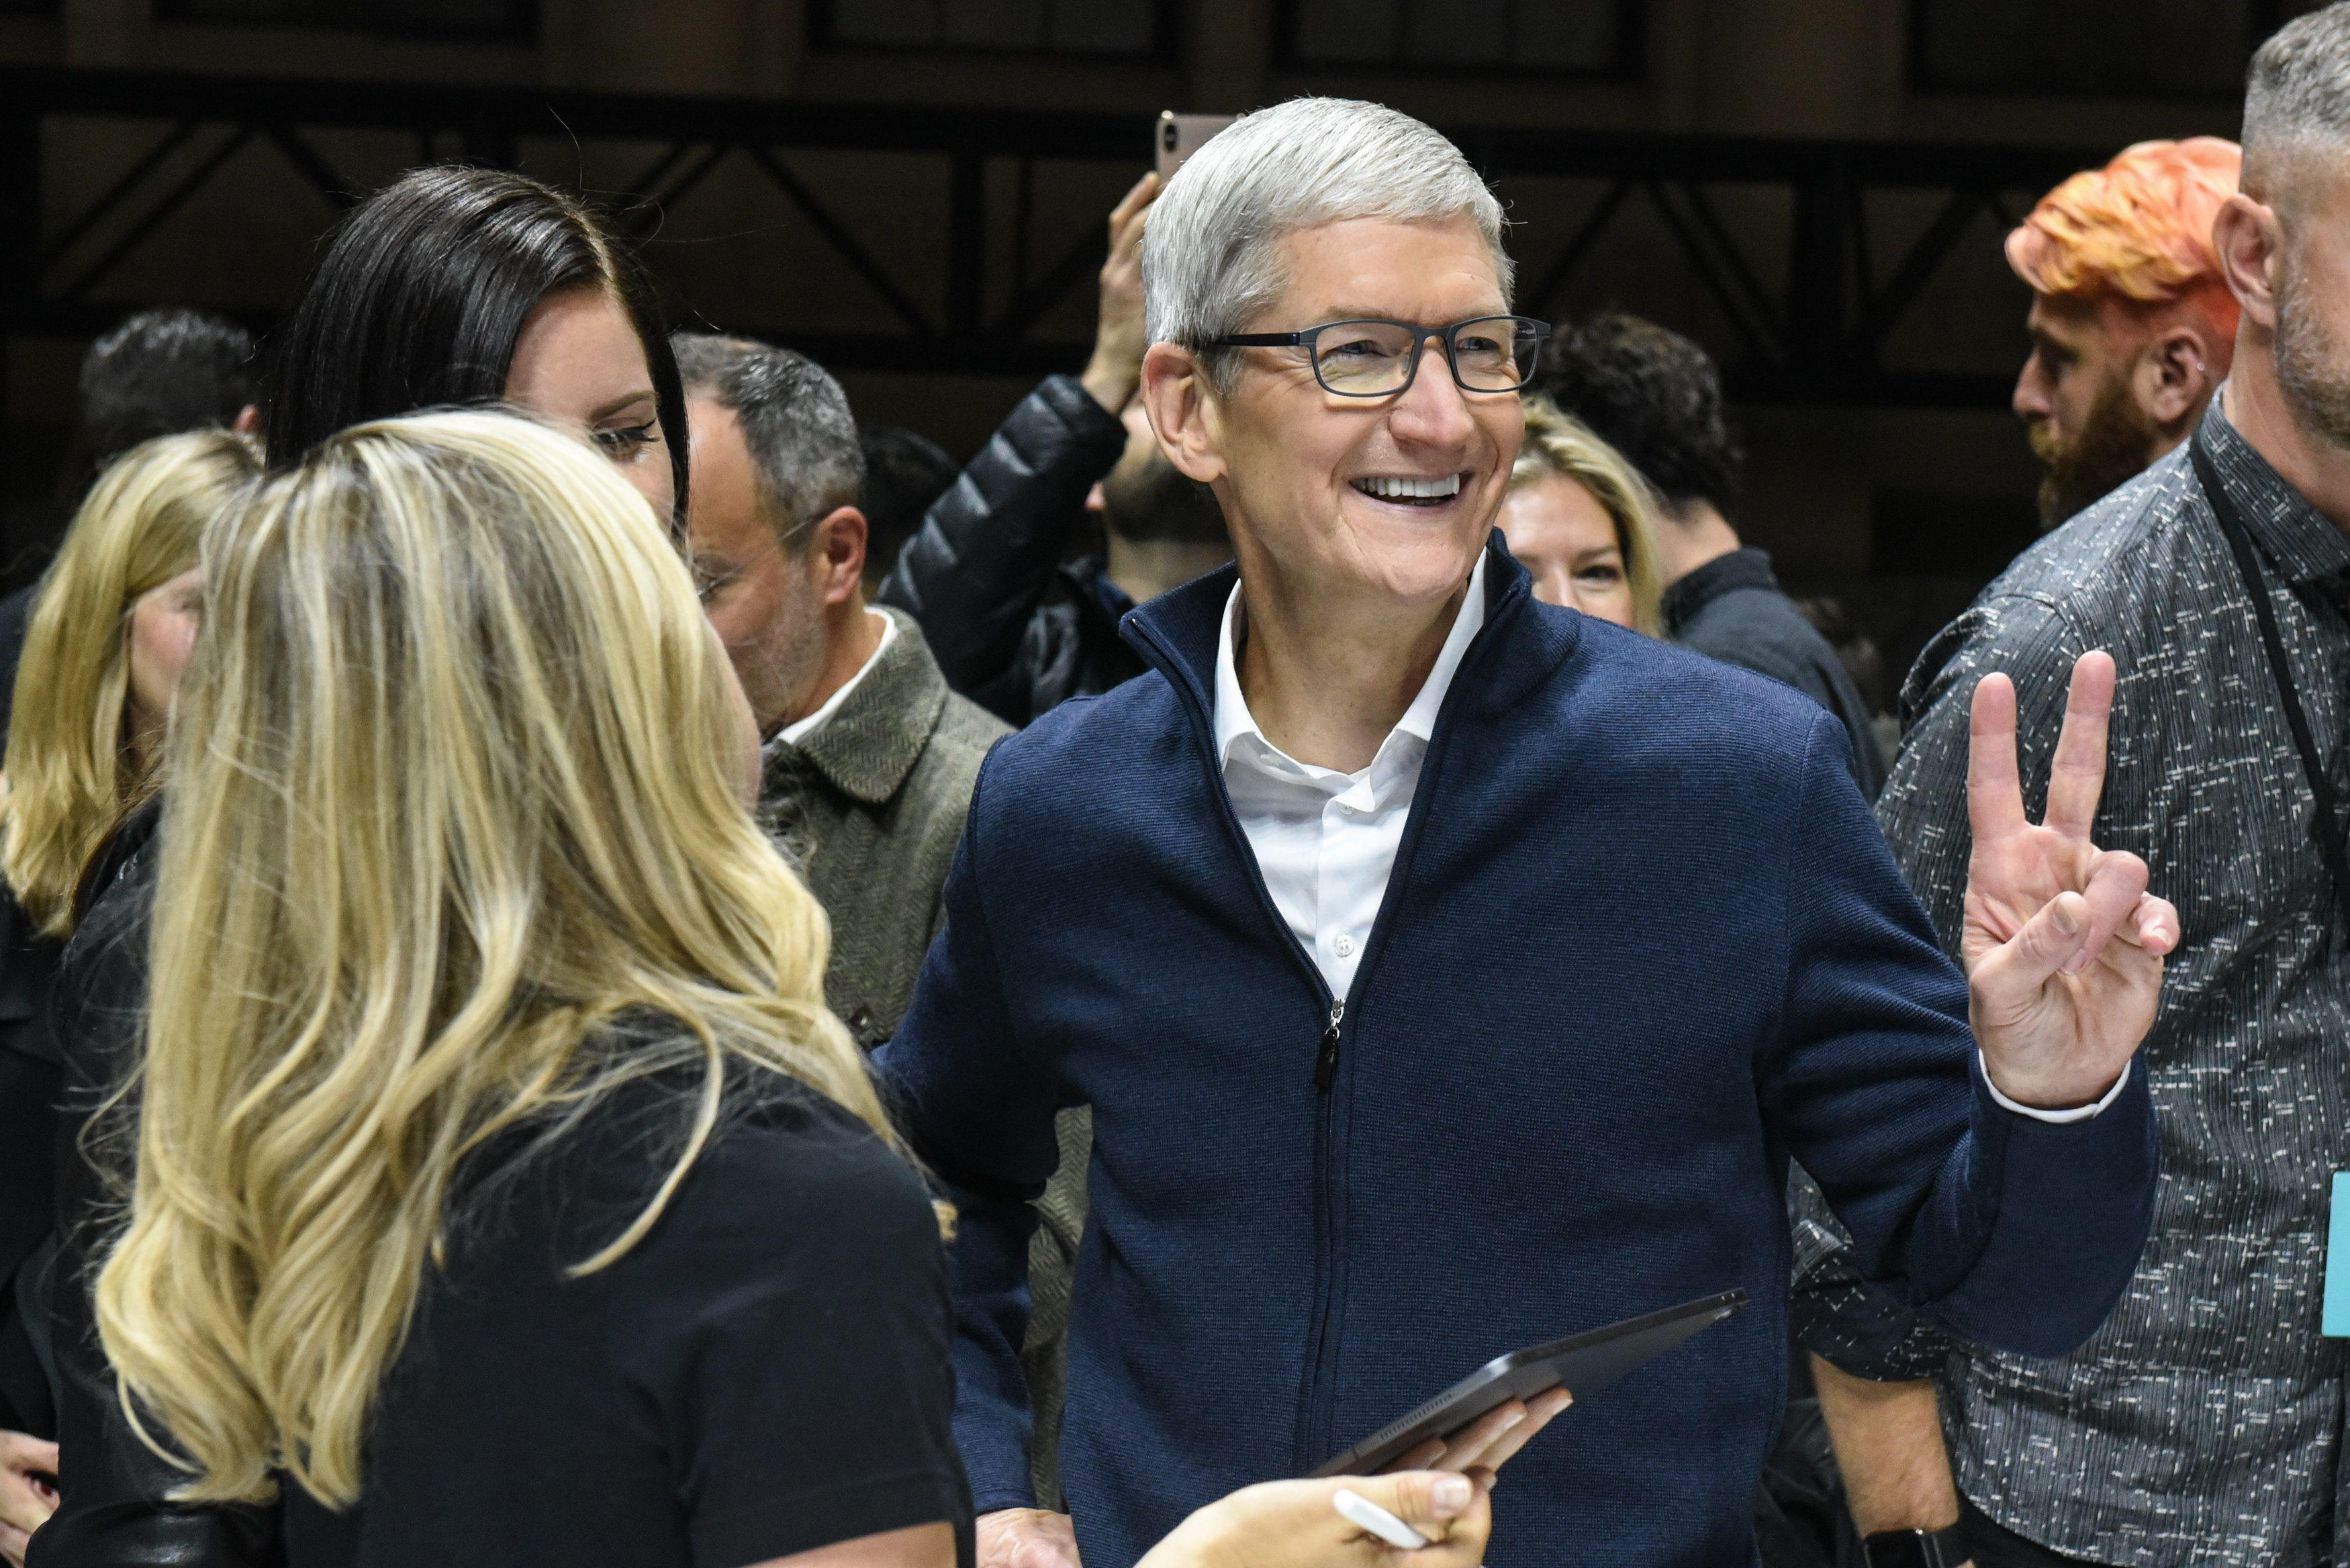 Apple has proven just how much power it has over tech giants